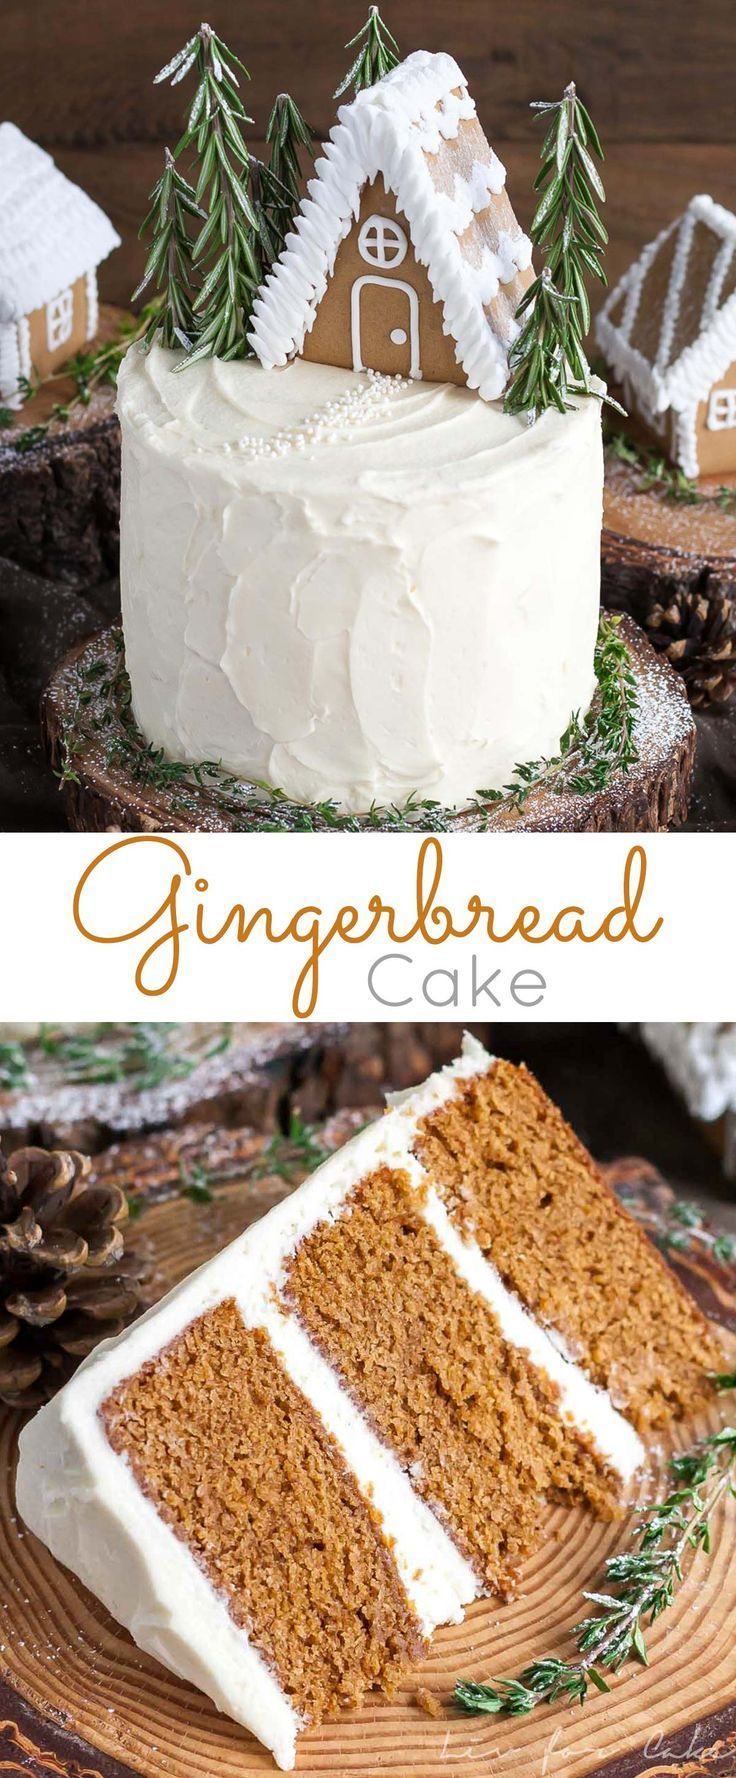 This Gingerbread Cake is perfect for the holidays! A moist and delicious ginger cake with a tangy cream cheese frosting. | http://livforcake.com #christmasrecipes